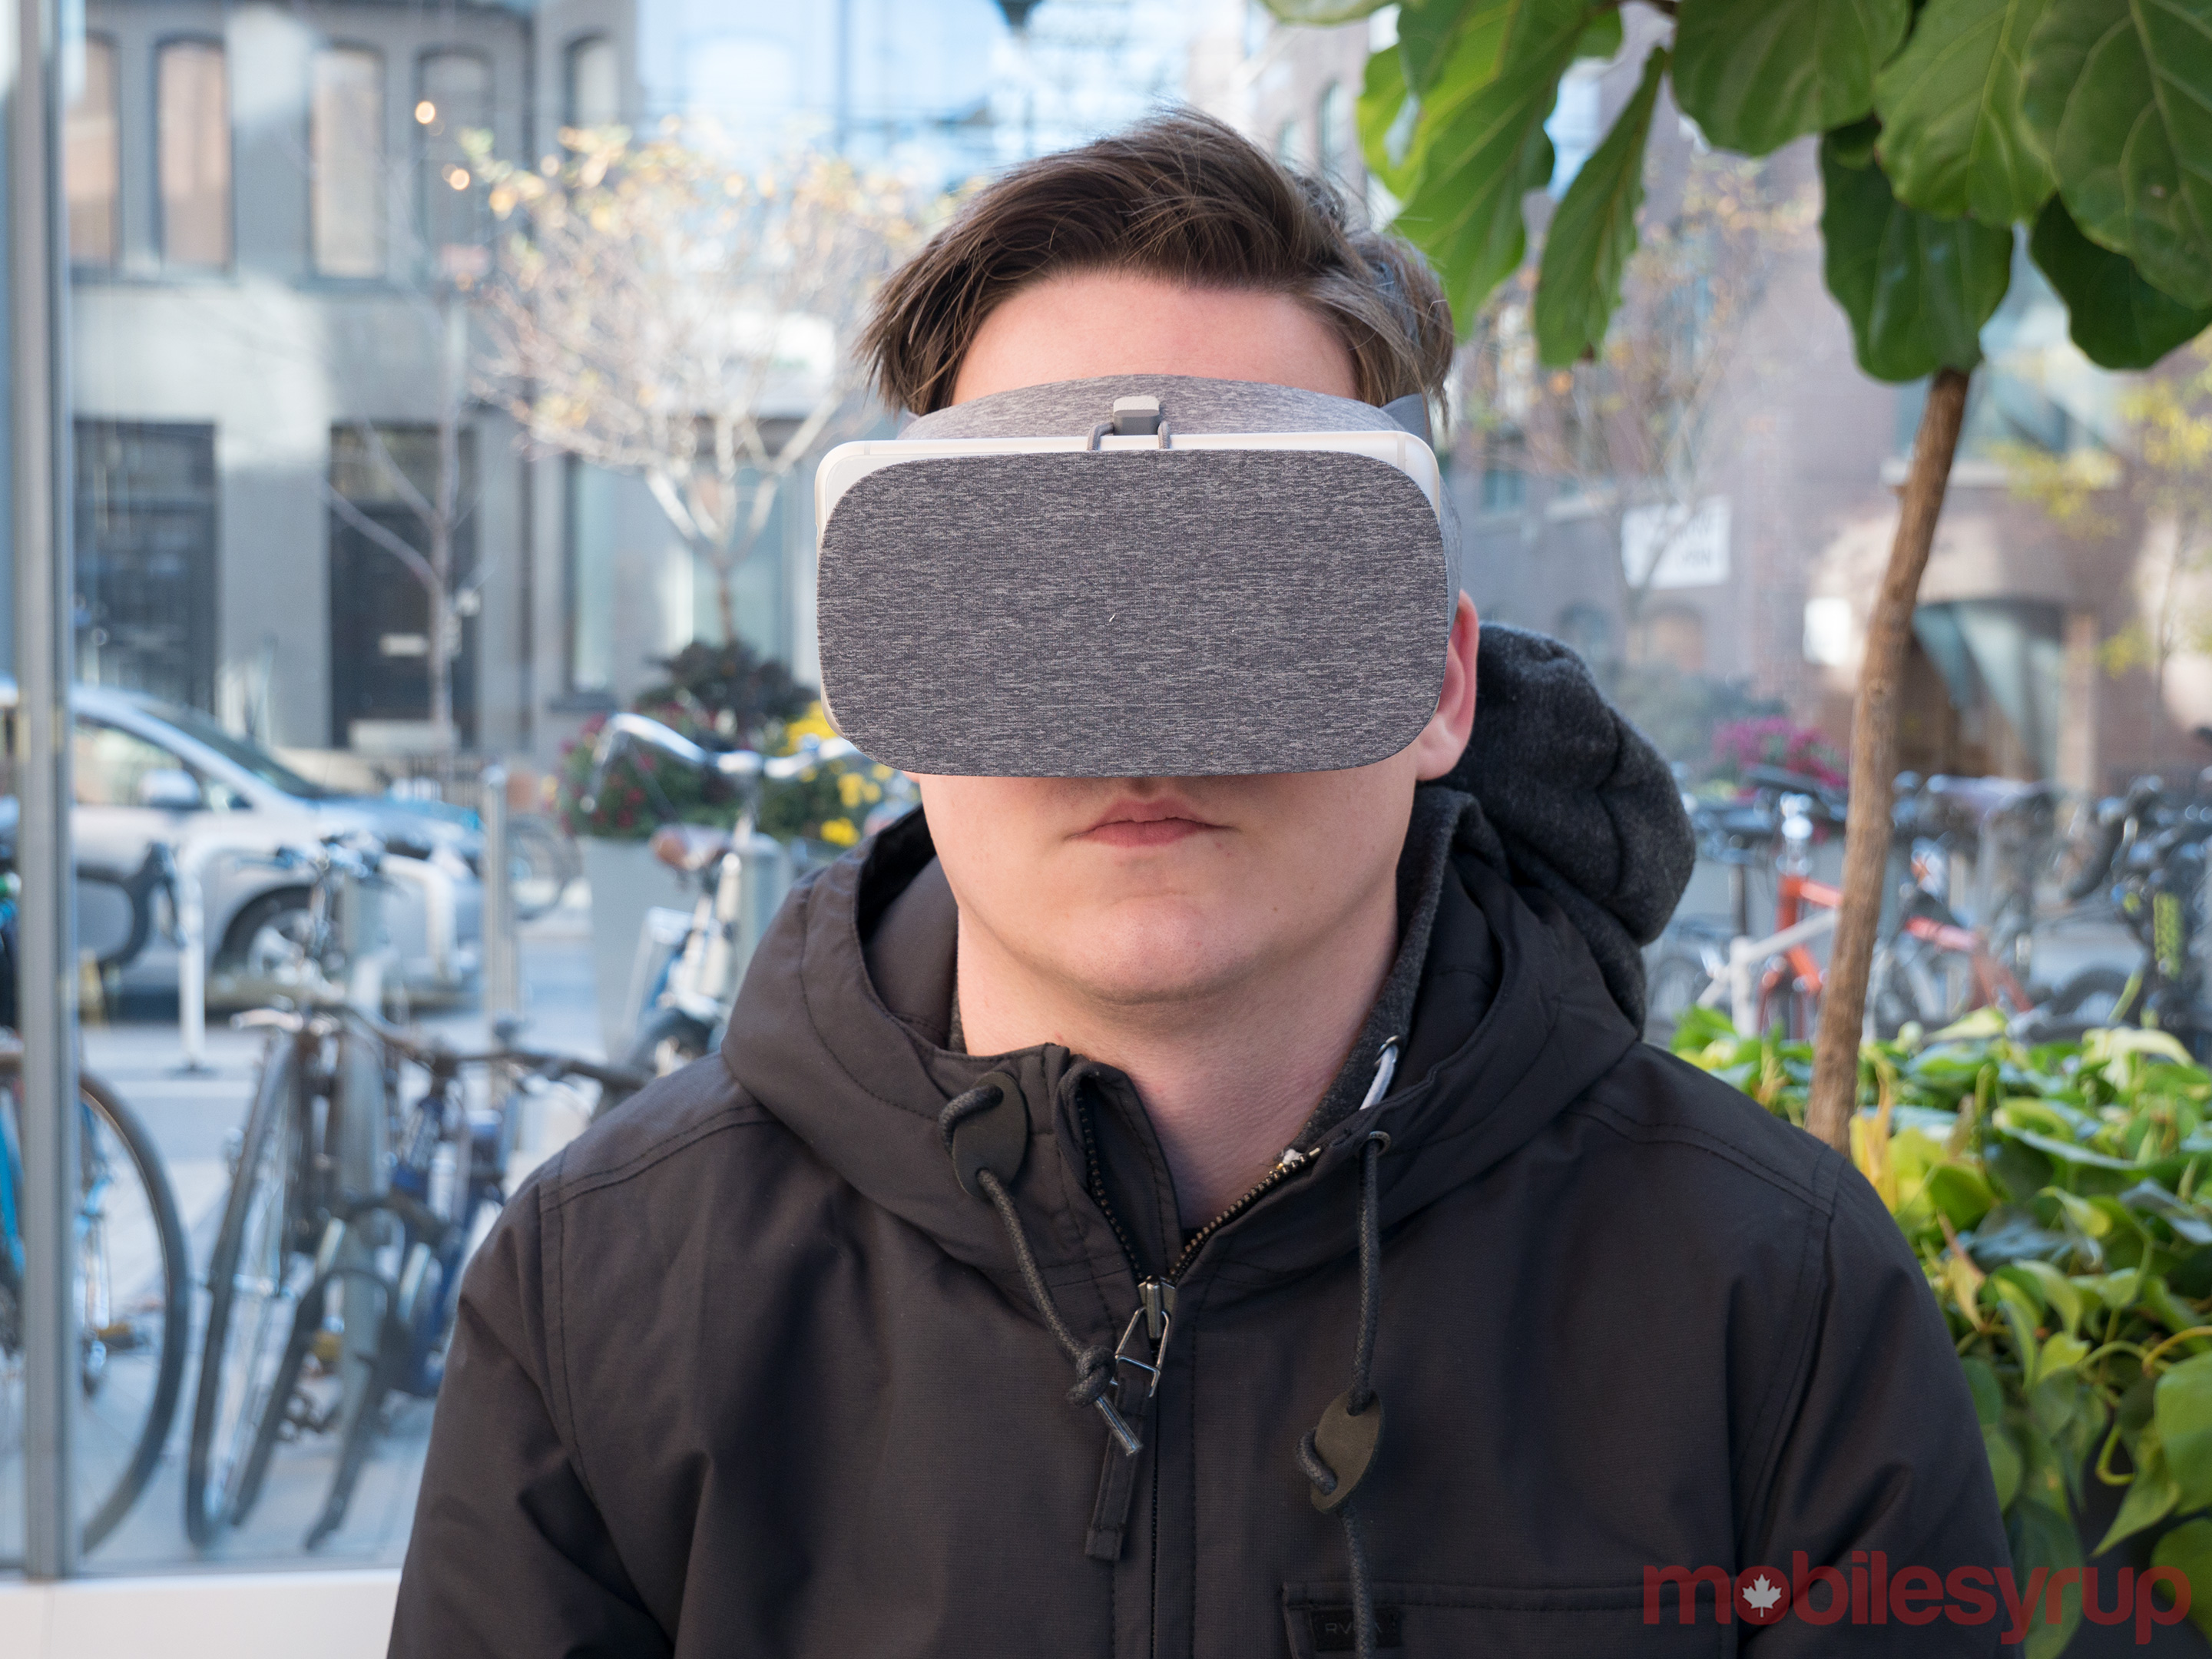 Google Daydream View Review: Beyond Cardboard | MobileSyrup